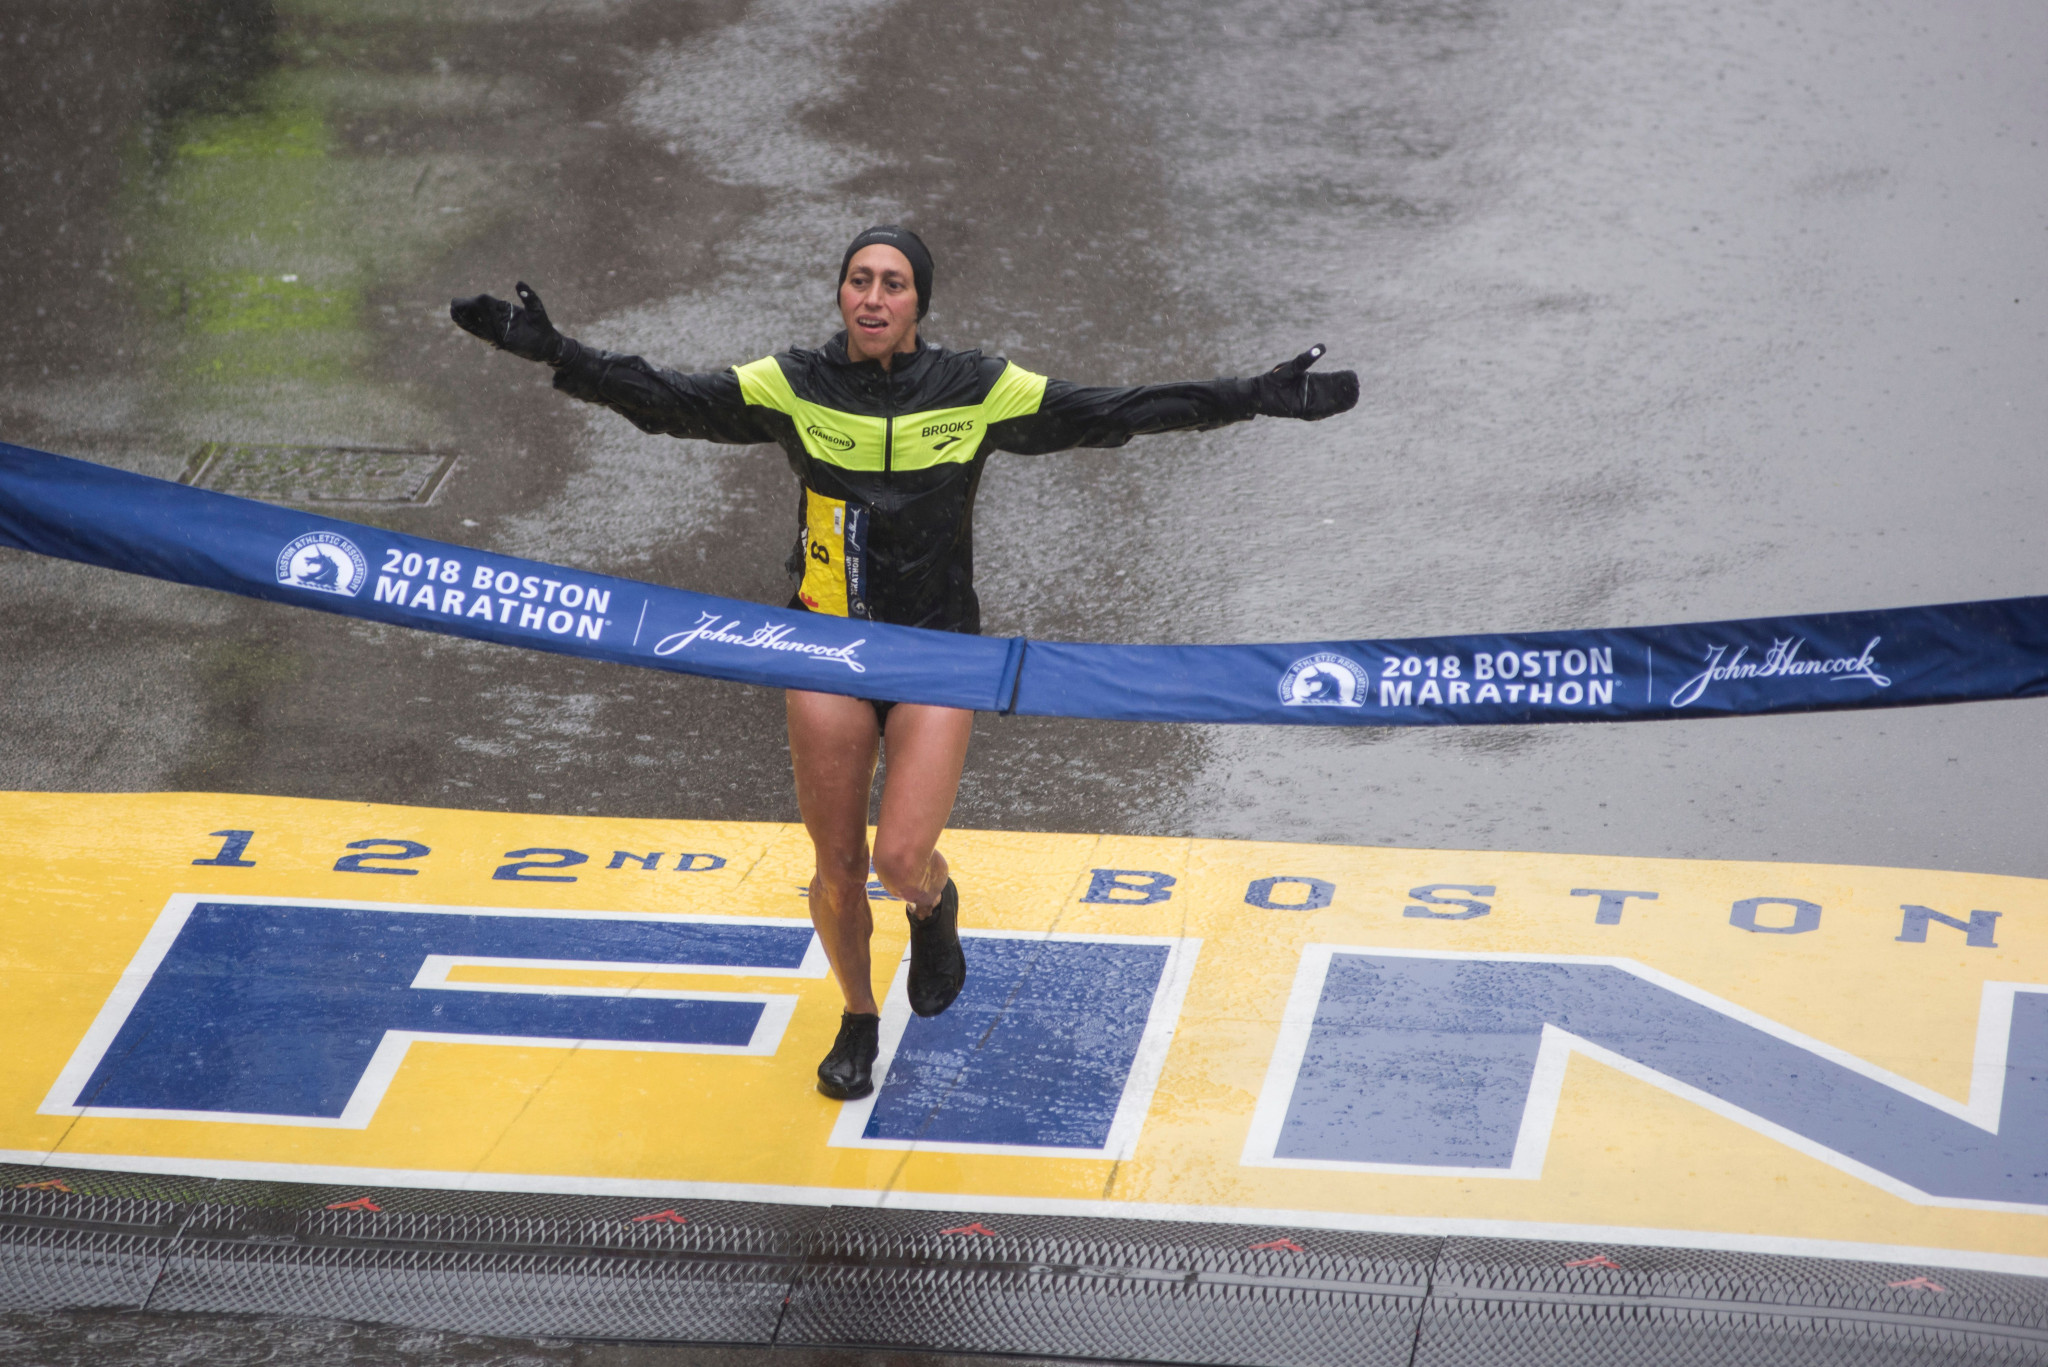 Desiree Linden floats home to become the first US woman to win the Boston Marathon since 1985 ©Getty Images